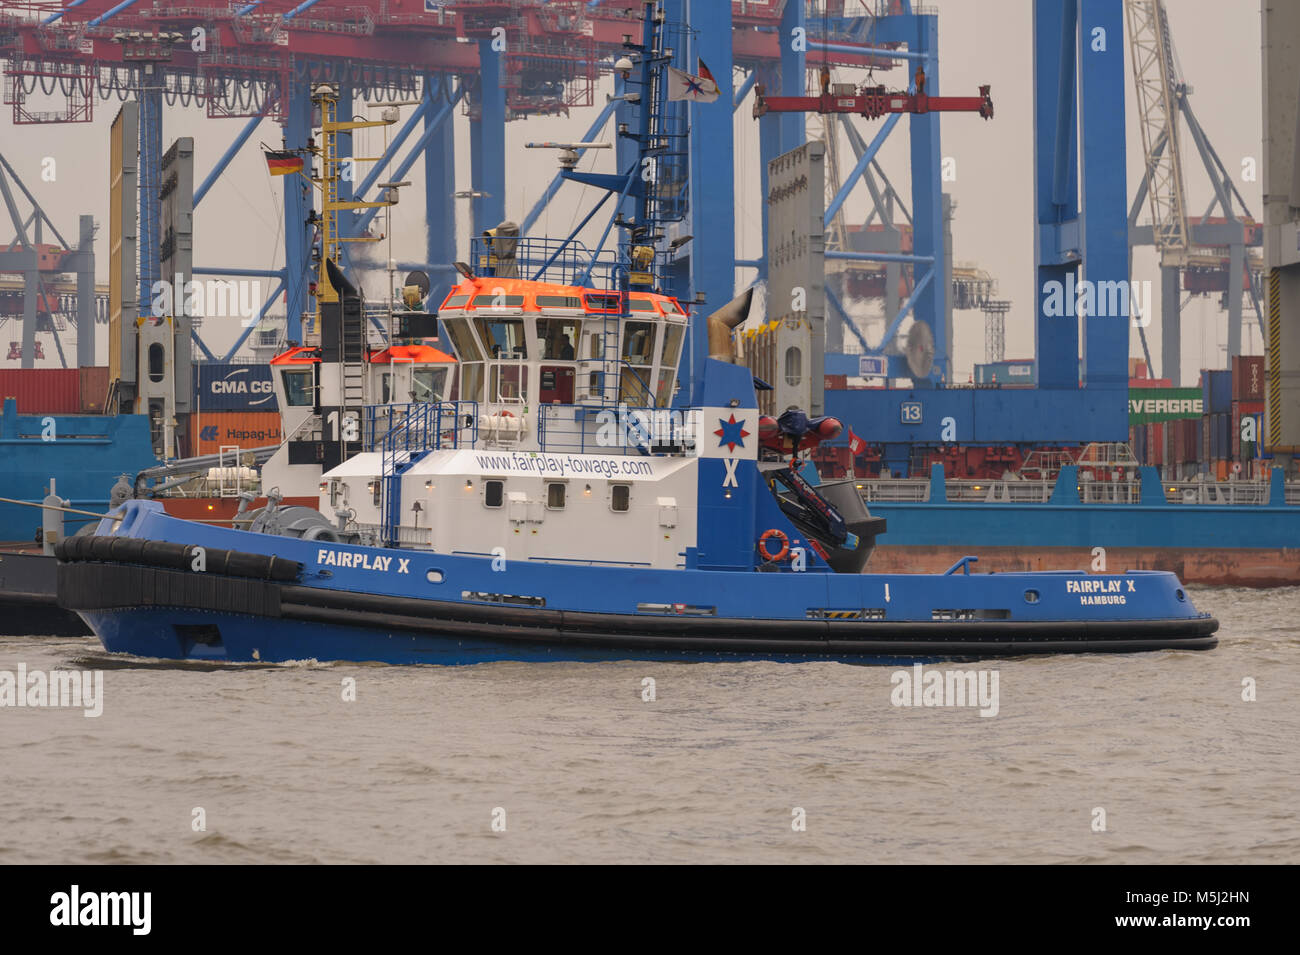 Hamburg, Germany - March 01st, 2014: The tugboat Fairplay X is one of 33 tugboats of the Fairplay line from the - Stock Image